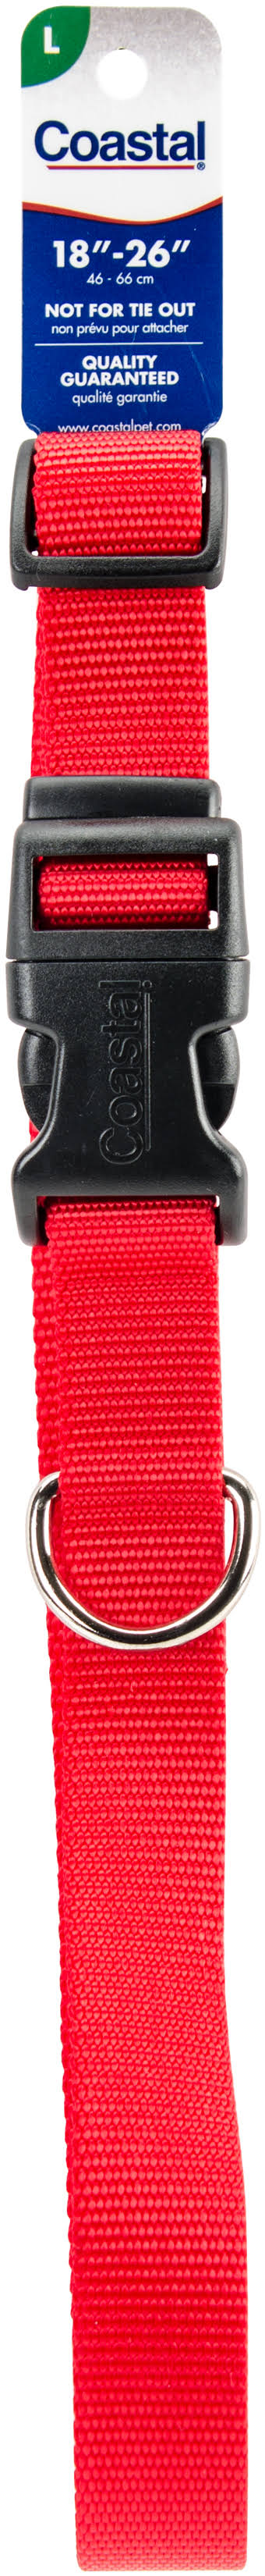 Coastal Pet Nylon Adjustable Dog Collar - Red, Large